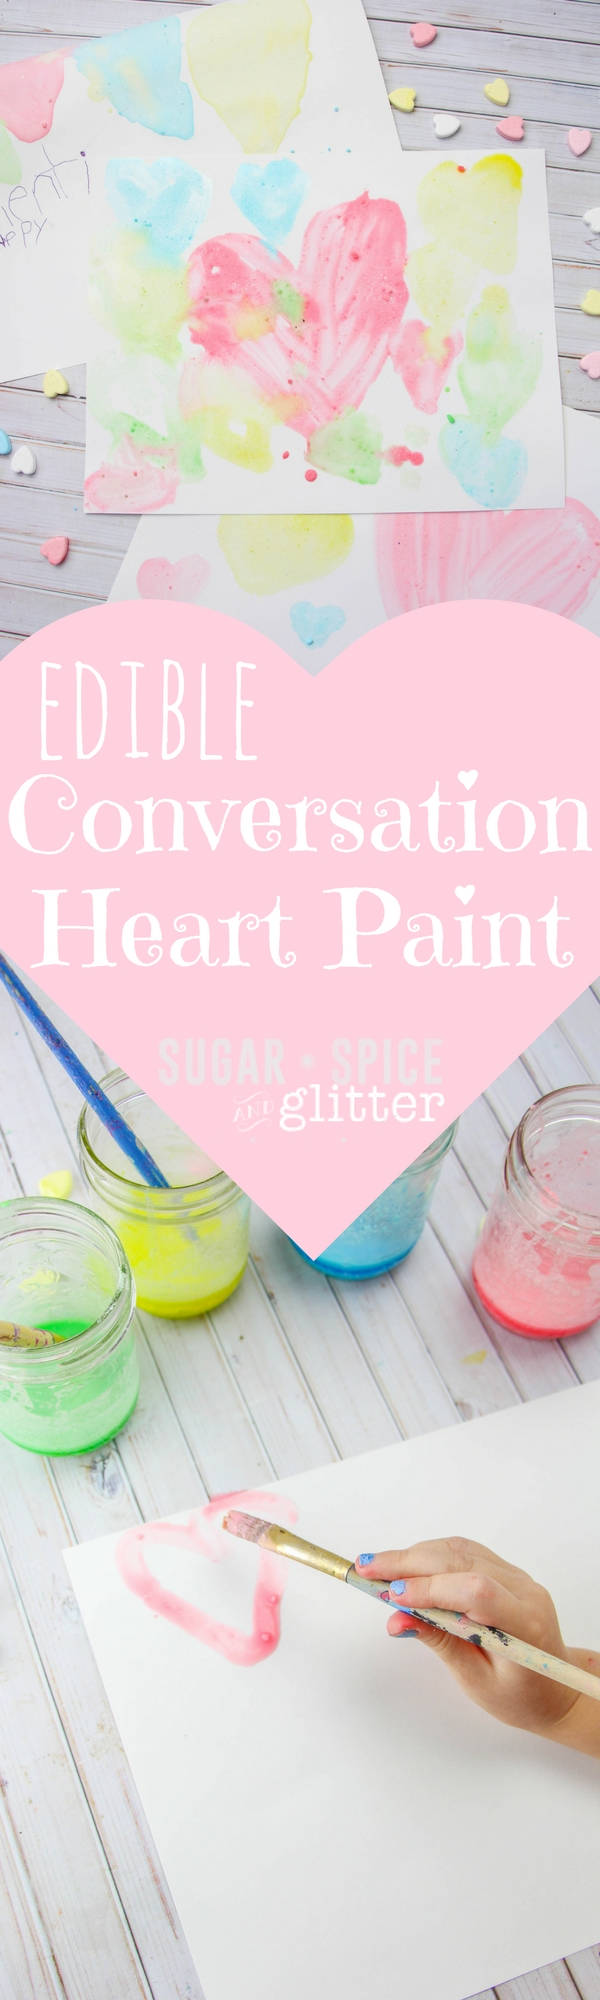 Edible Conversation Heart Paint - a homemade candy paint recipe is a great way to use up leftover conversation hearts and results in a glossy and yummy-scented paint. Perfect for Valentine's Day for kids